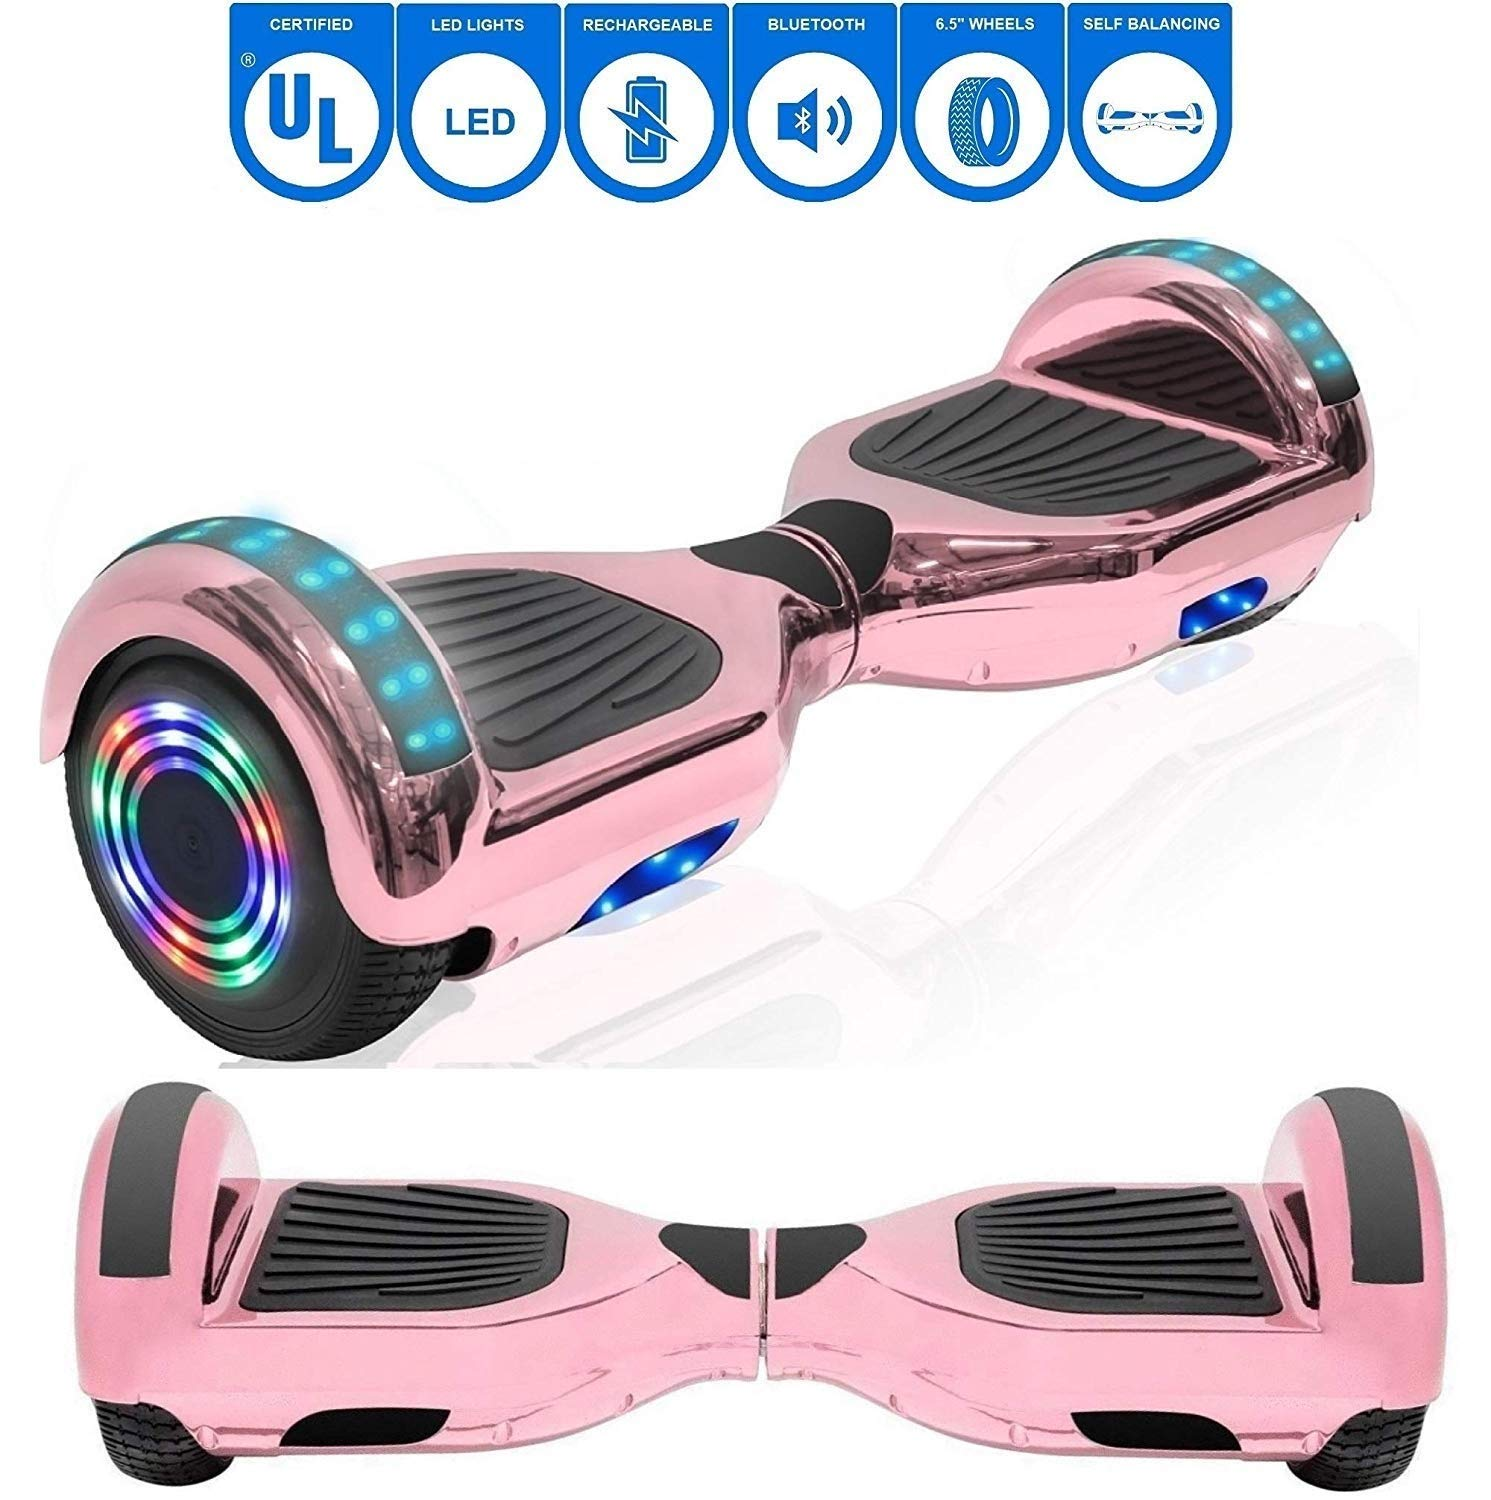 NHT 6.5'' Chrome Edition Hoverboard Self Balancing Scooter w/LED Wheels and Lights (Chrome Rose Gold)